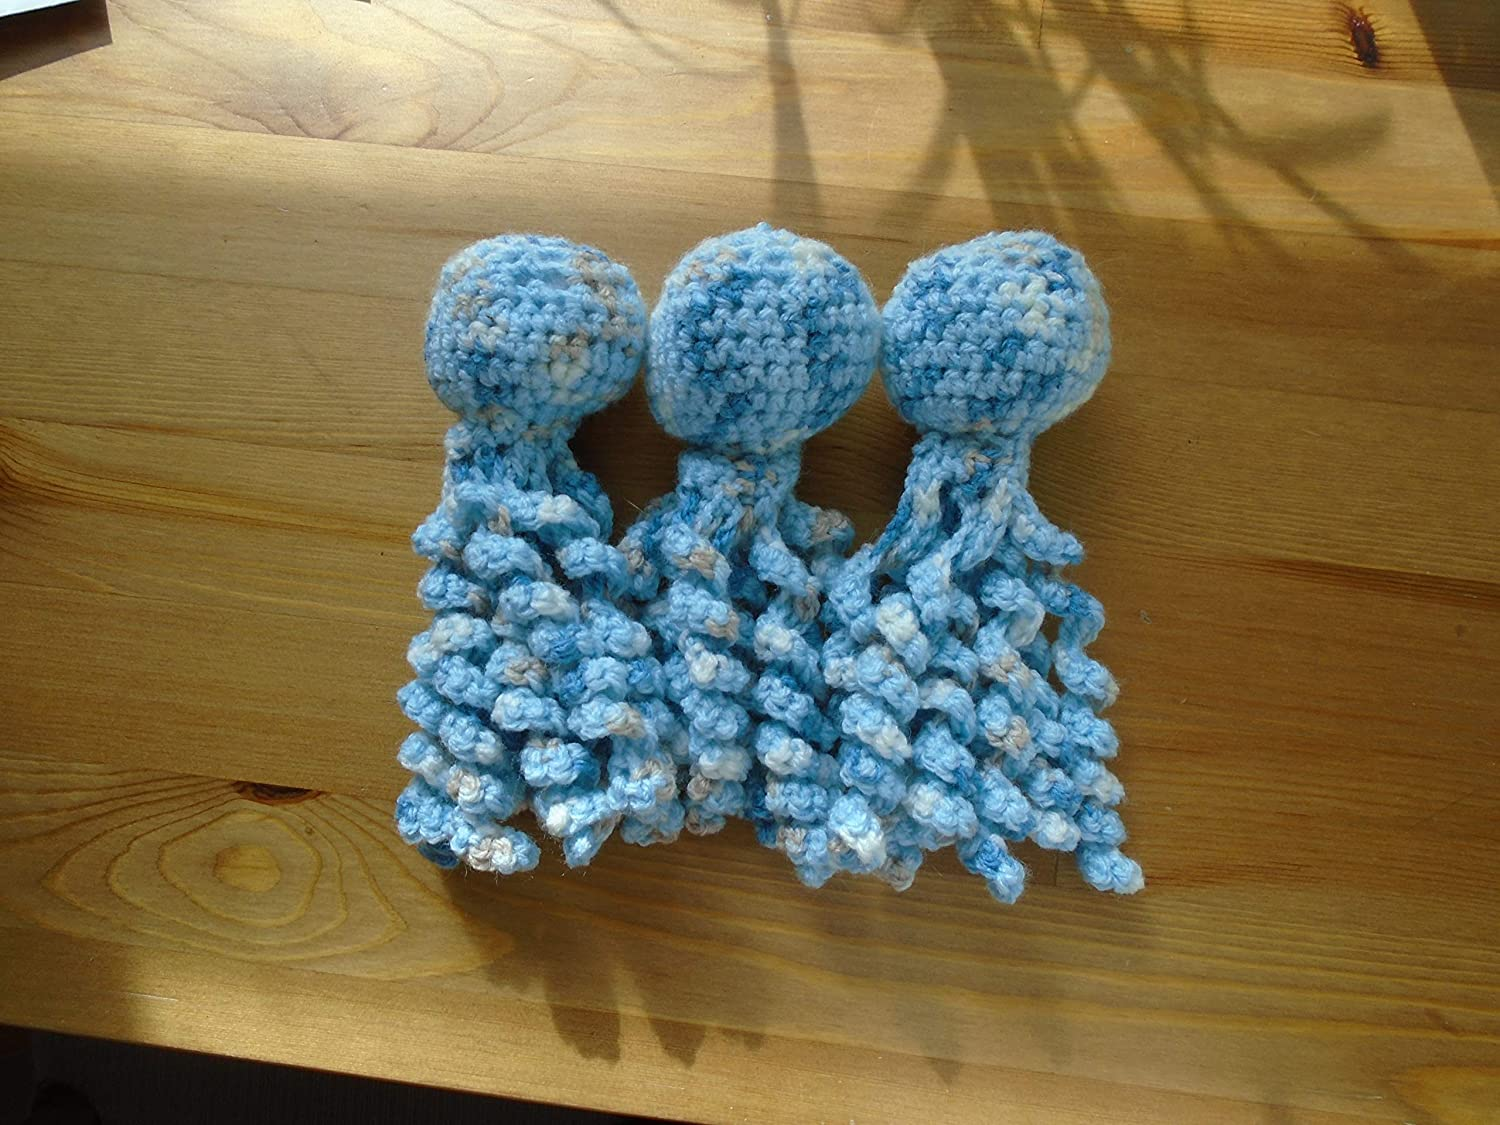 Hand-crocheted octopus for baby, newborn or premature all proceeds to charity Porridge and Rice